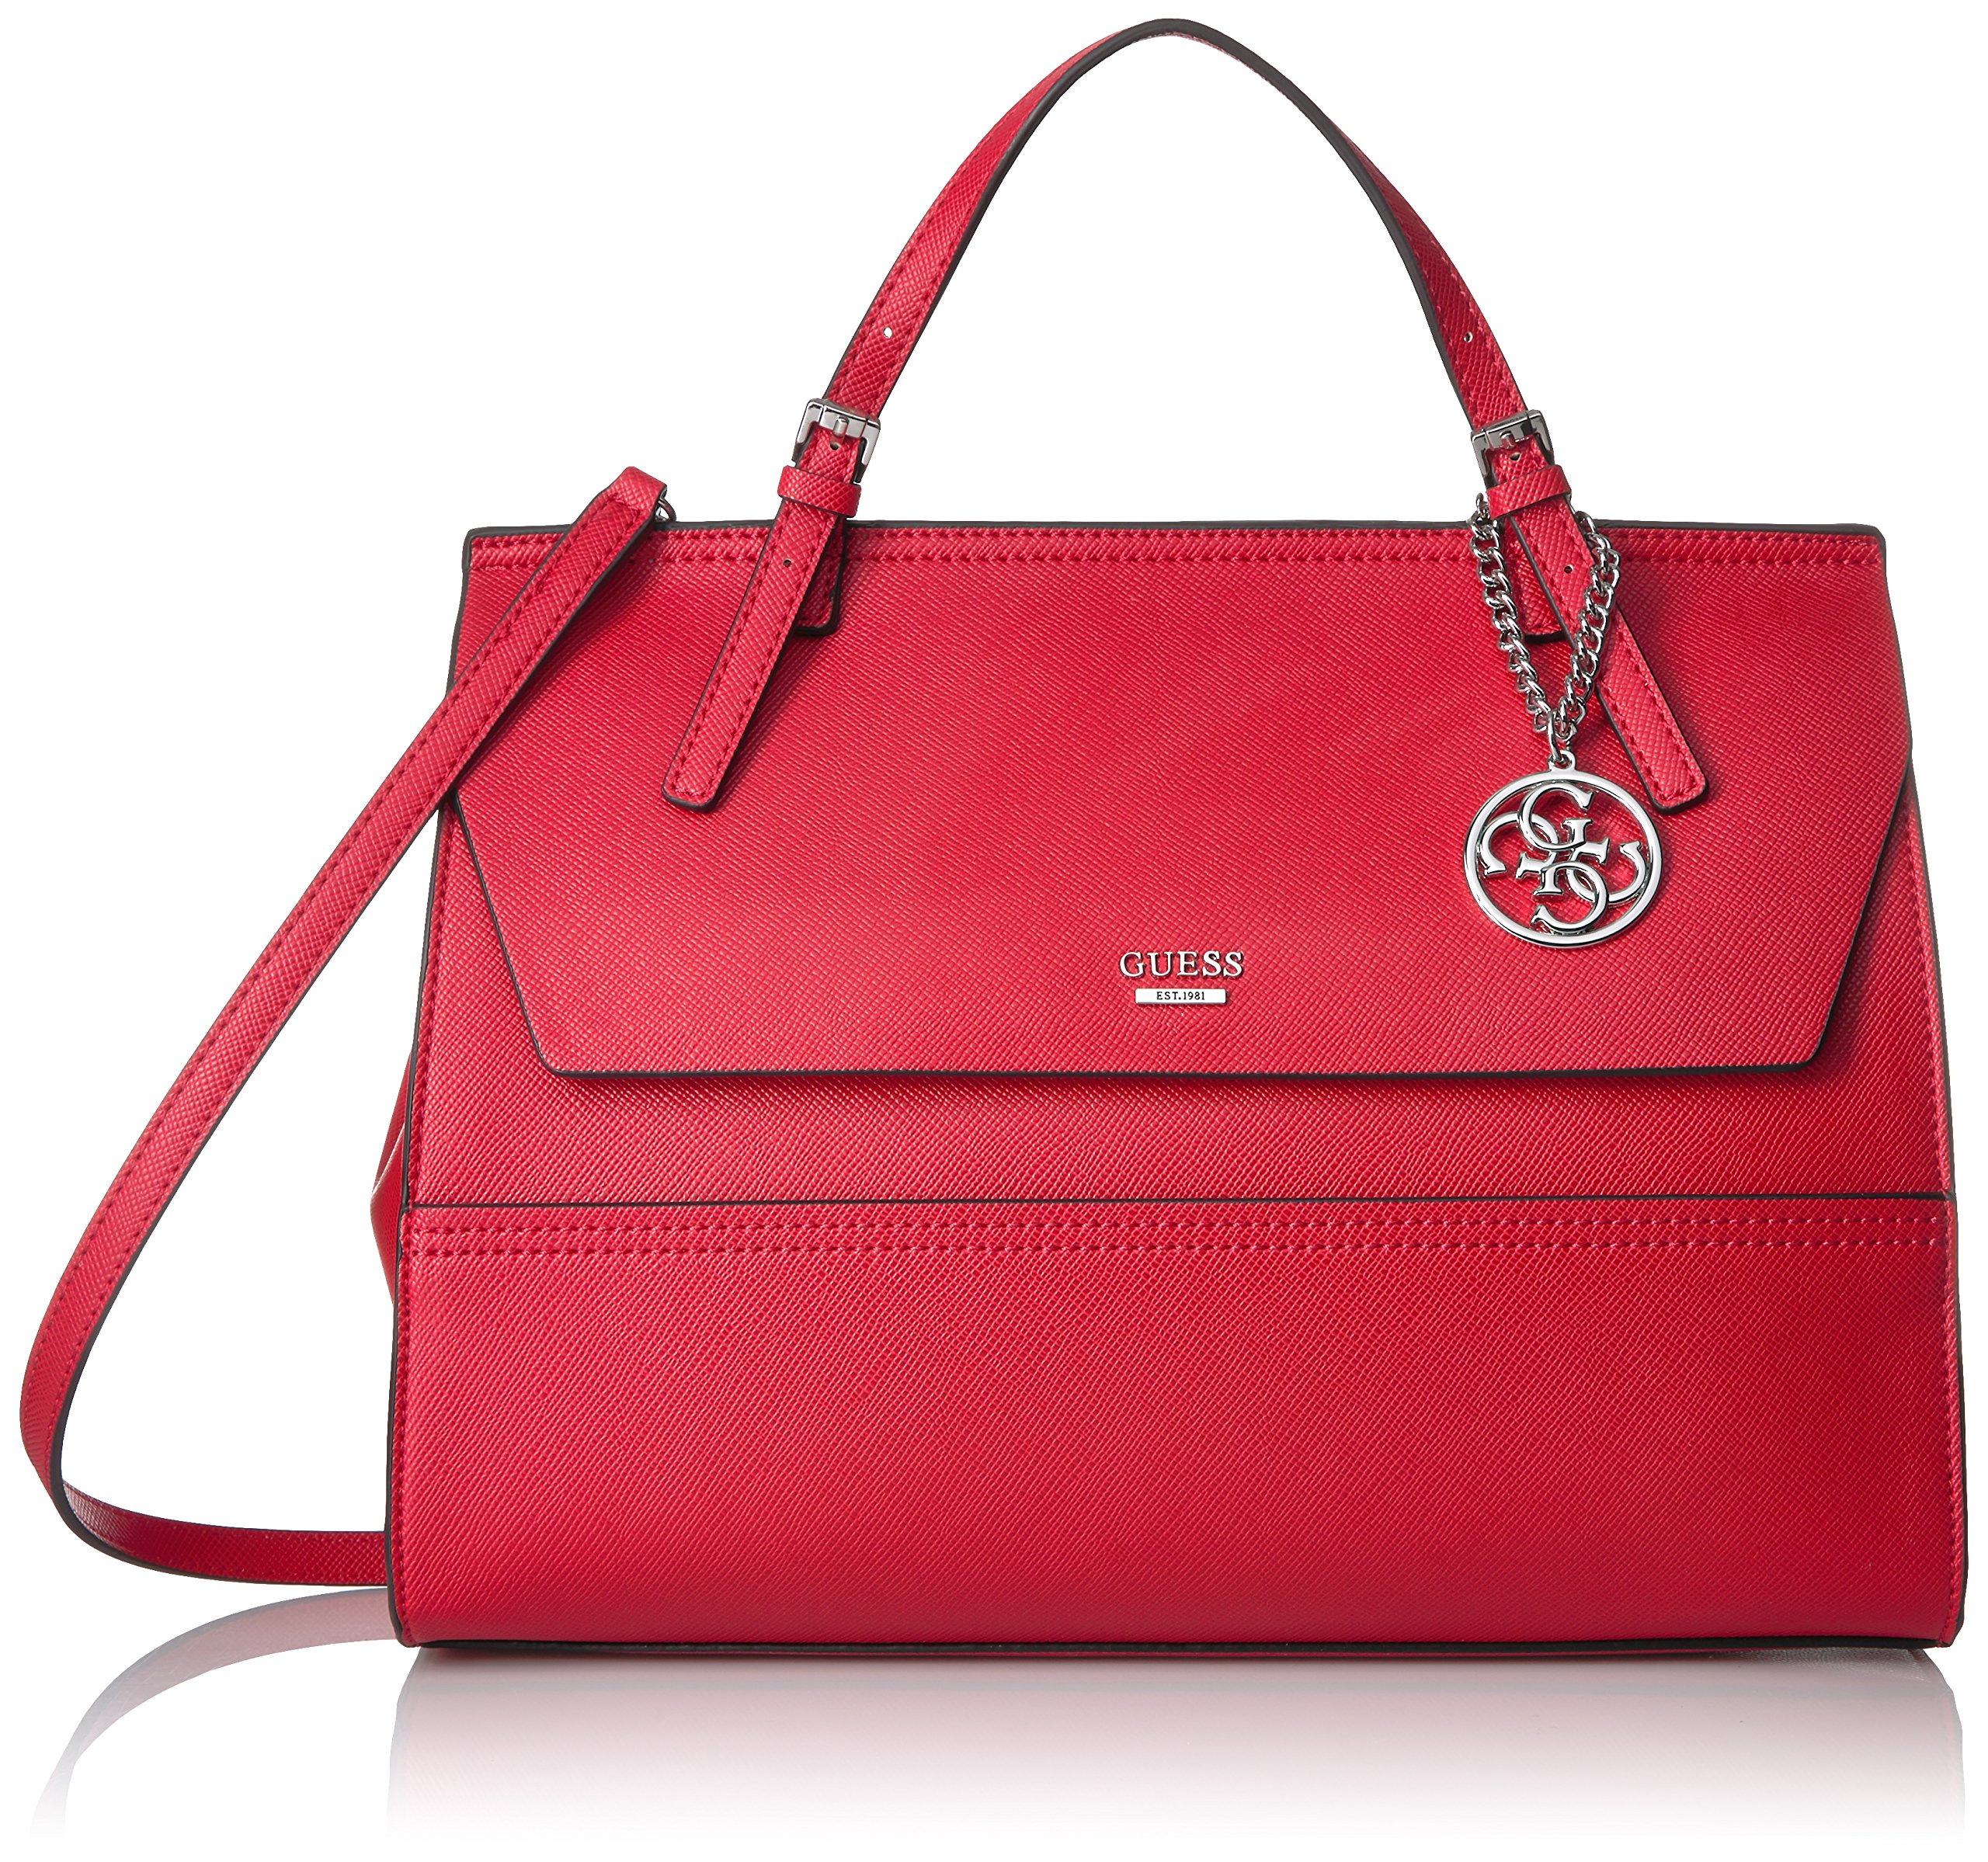 GUESS Huntley Saffiano Top Handle Flap, Cny Red